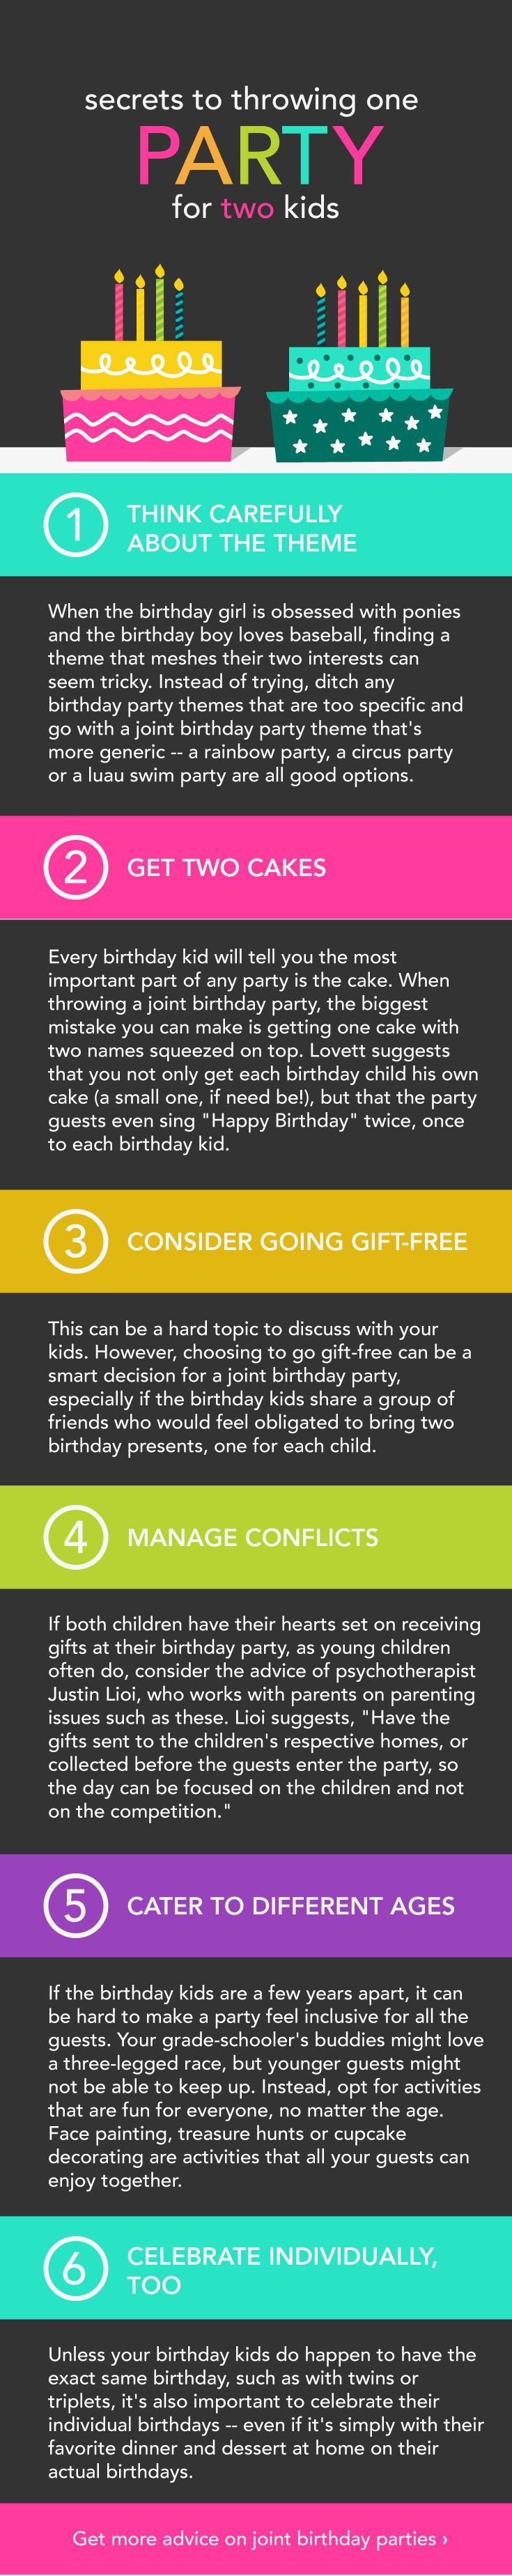 wording0th birthday party invitation%0A How to Throw a Joint Birthday Party   Joint birthday parties  Siblings and  Success